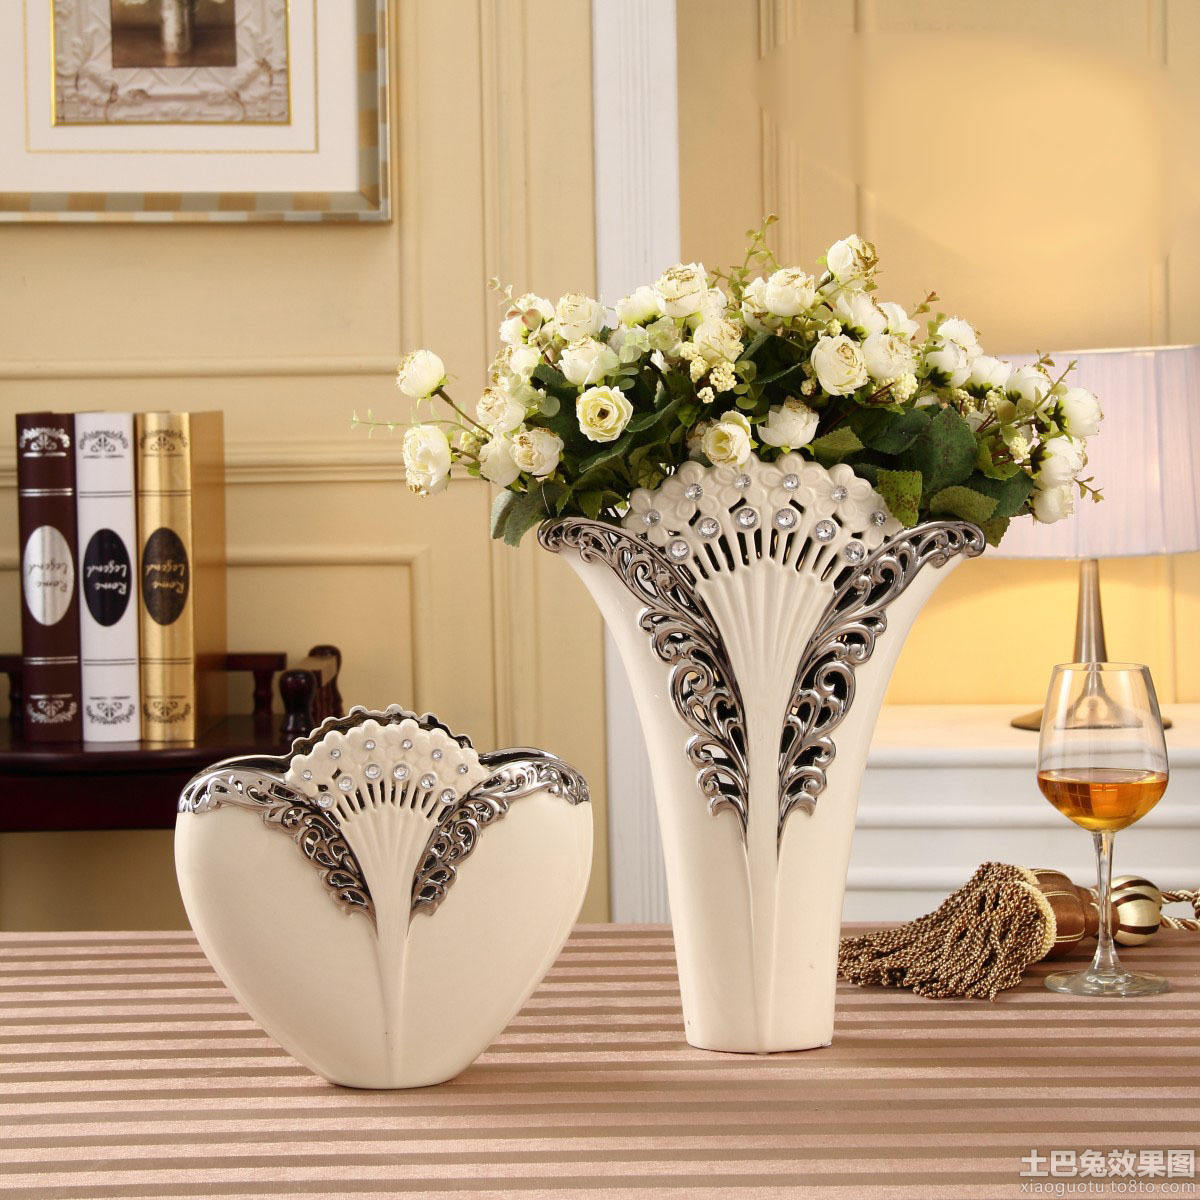 home decorating ideas with vases 简约时尚家装图片 土巴兔装修效果图 12733